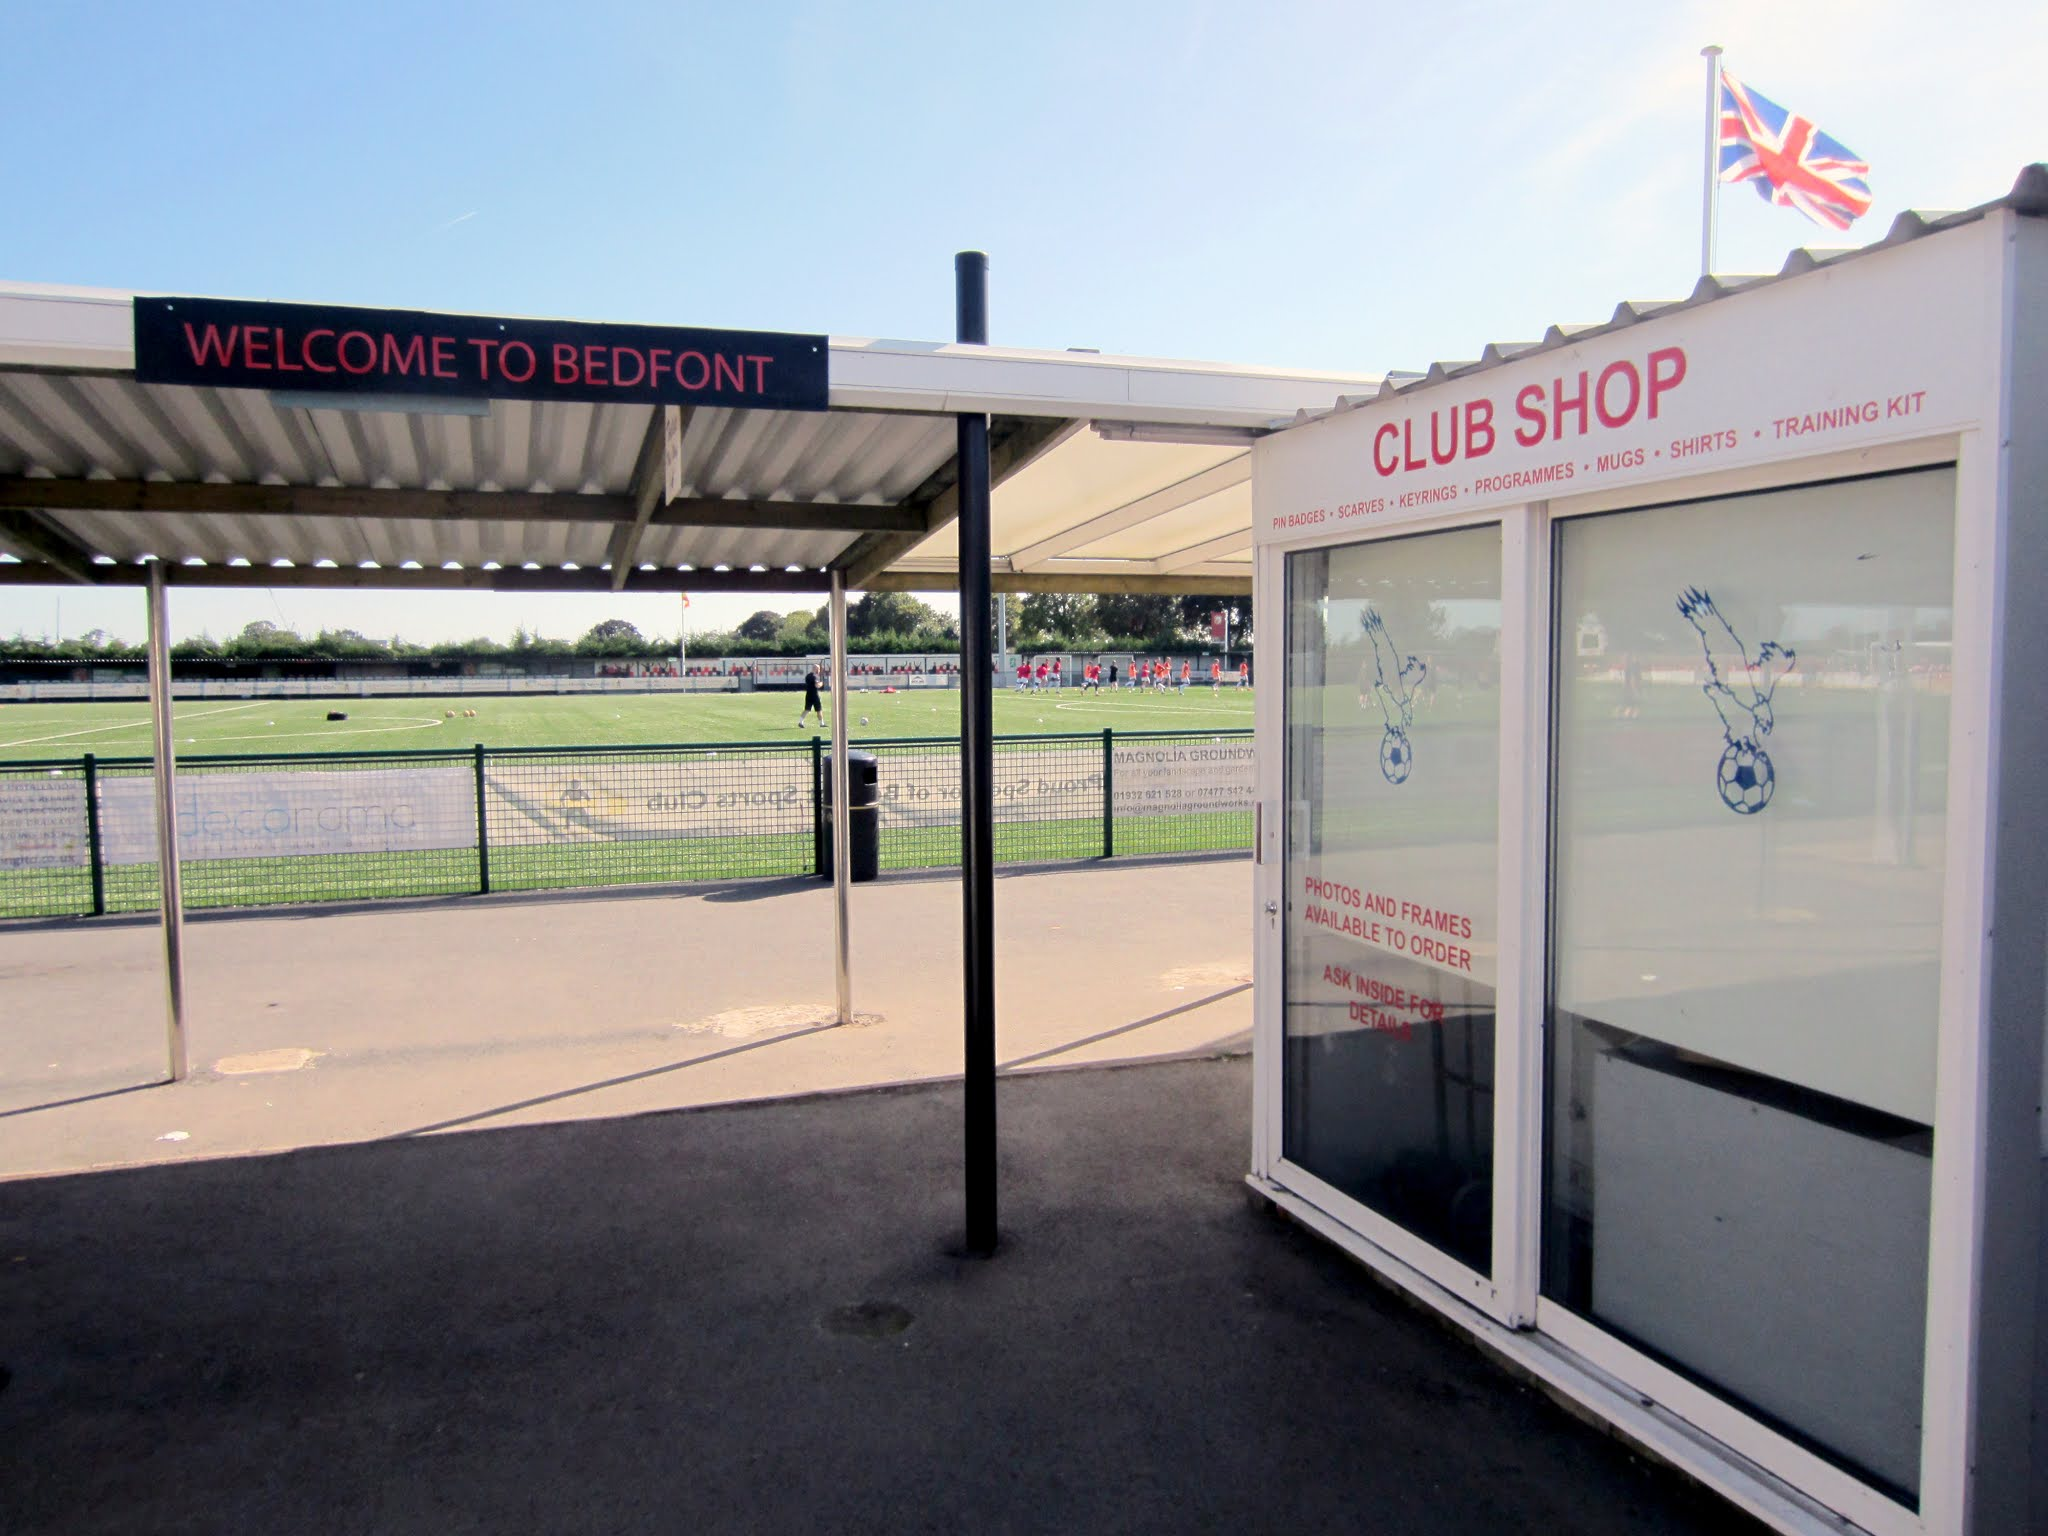 Welcome to Bedfont sign and club shop